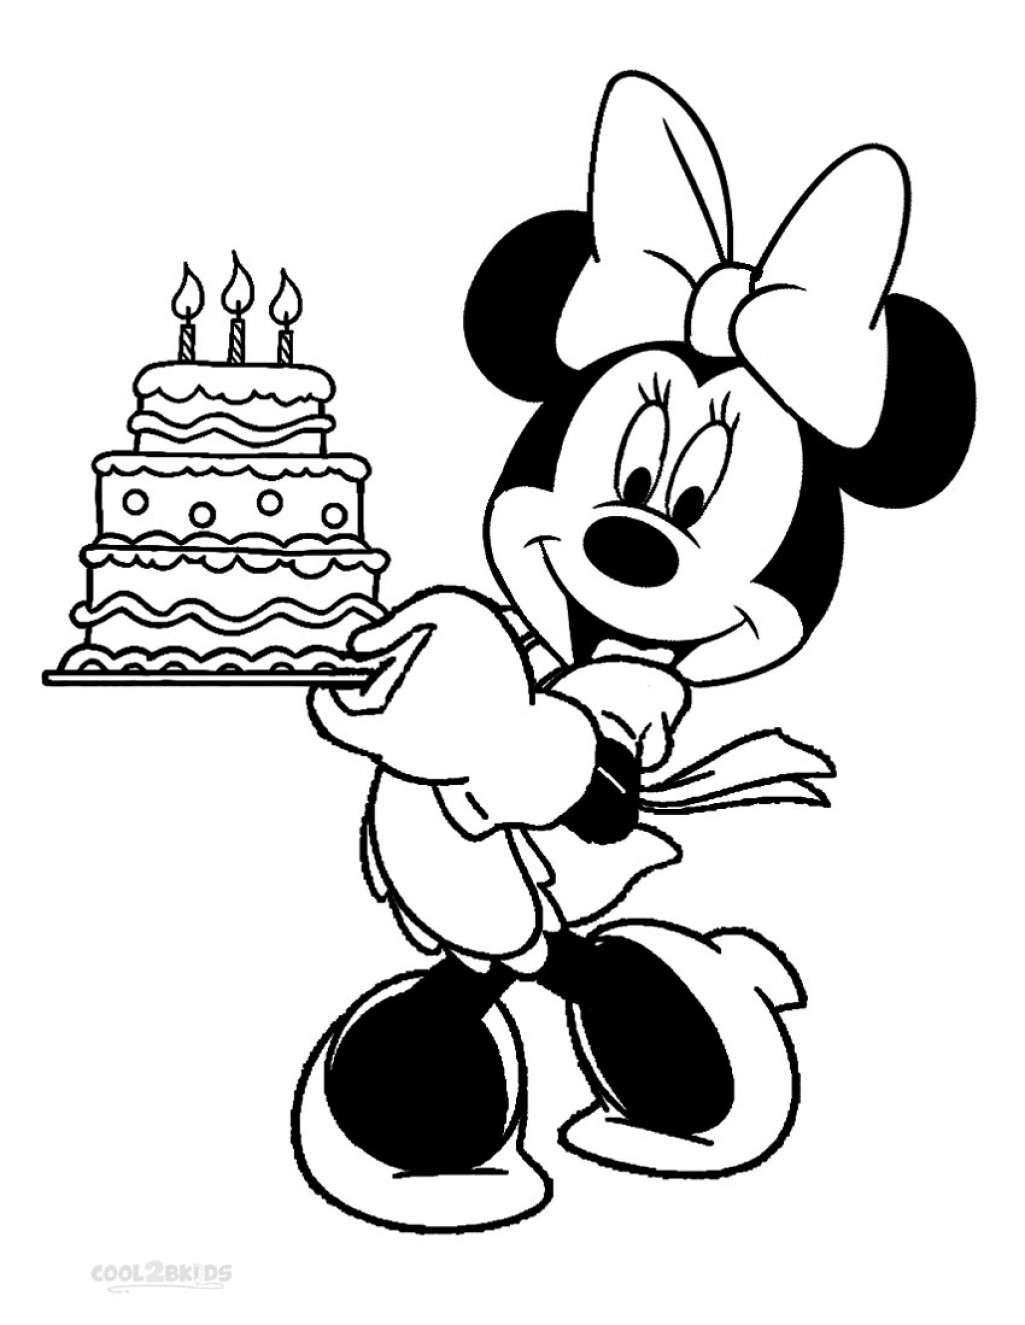 1025x1325 Perfect Mouse Coloring Page Top Mickey Minn